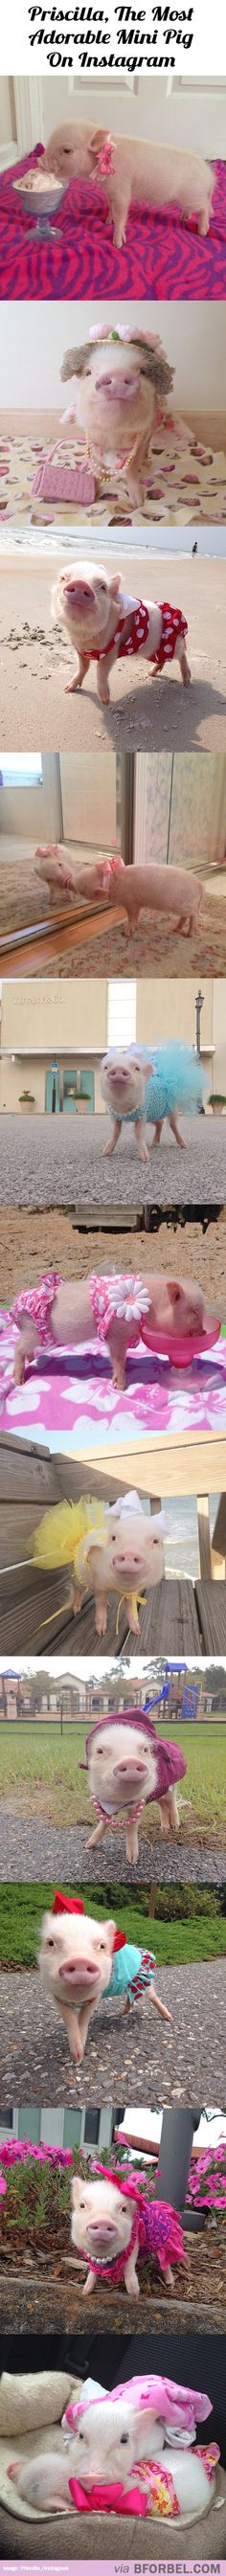 Meet Priscilla, The Most Adorable Mini Pig On Instagram…